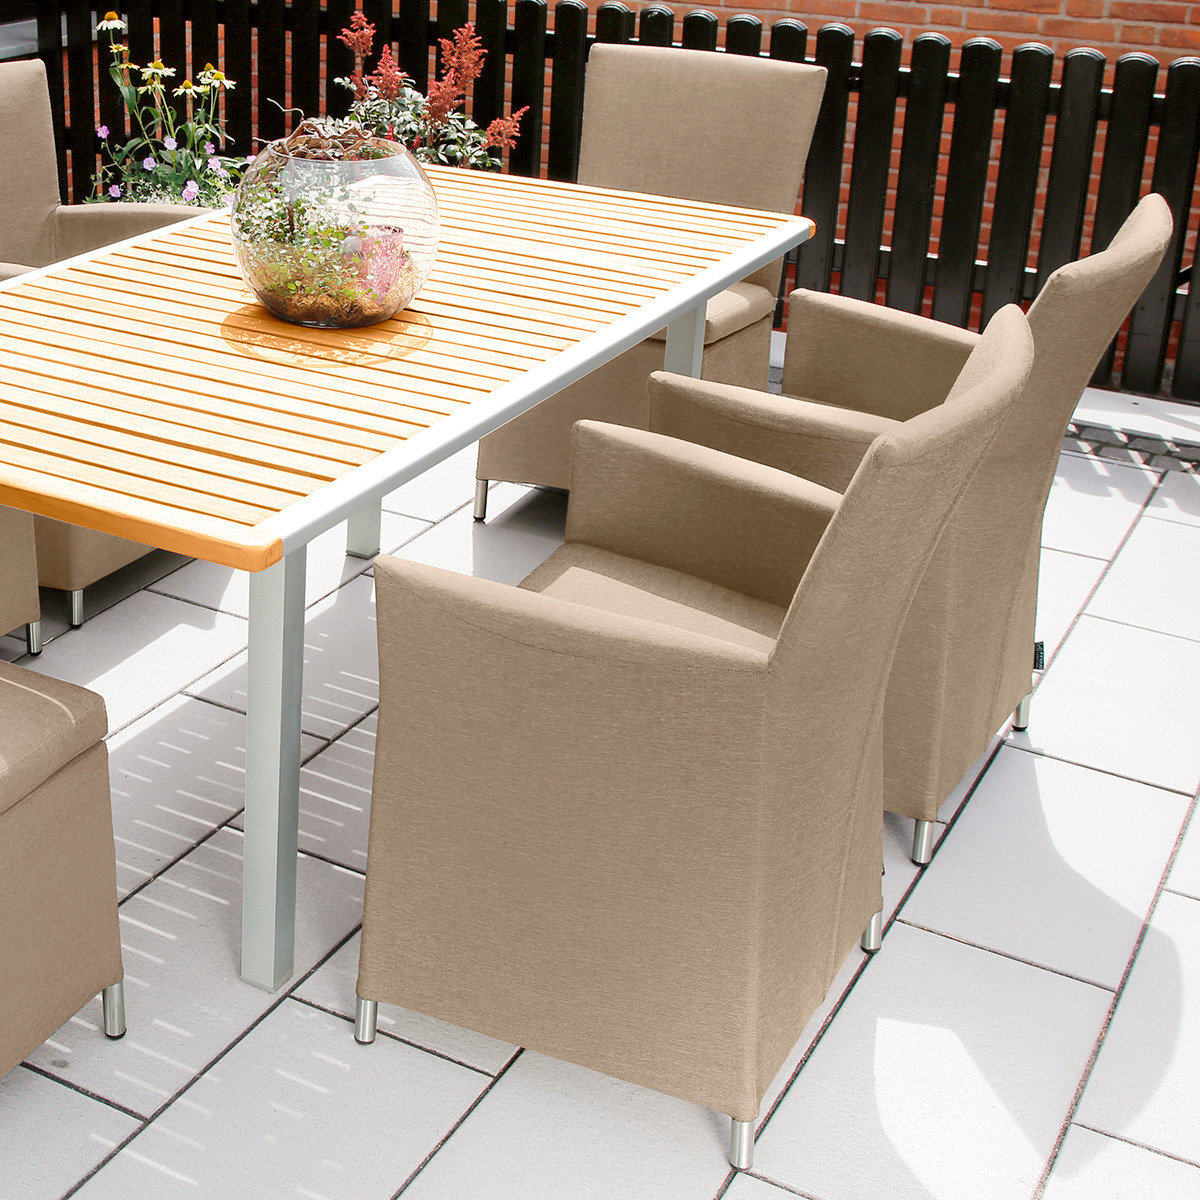 Outdoor Sessel Sunflower mit Armlehnen, beige | #2